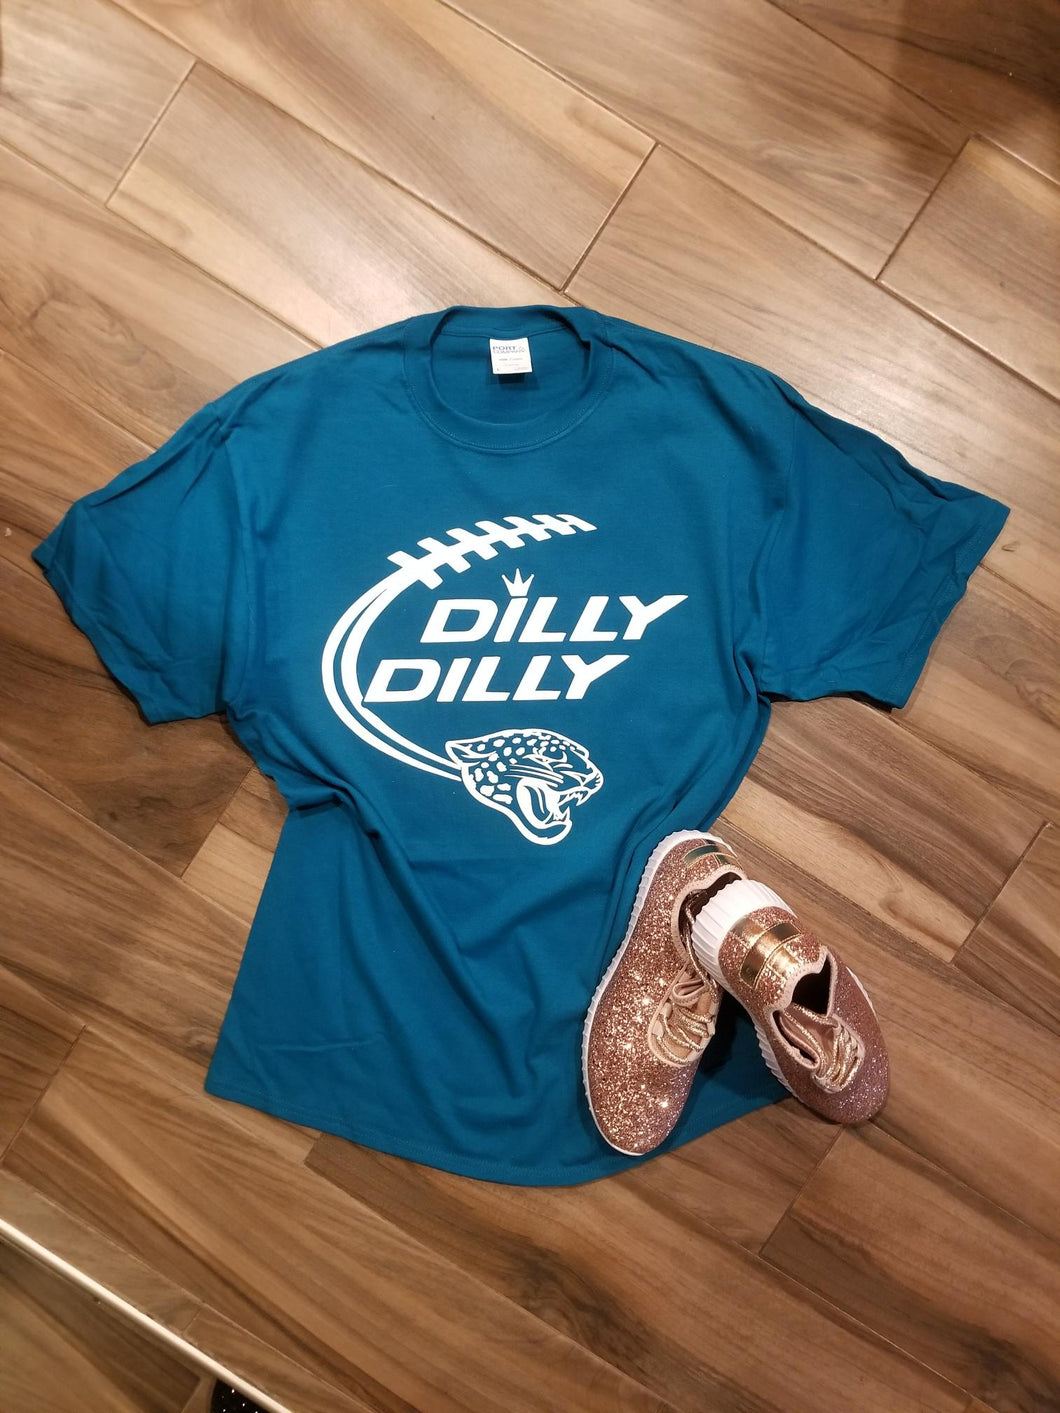 Jacksonville Jaguars Dilly Dilly